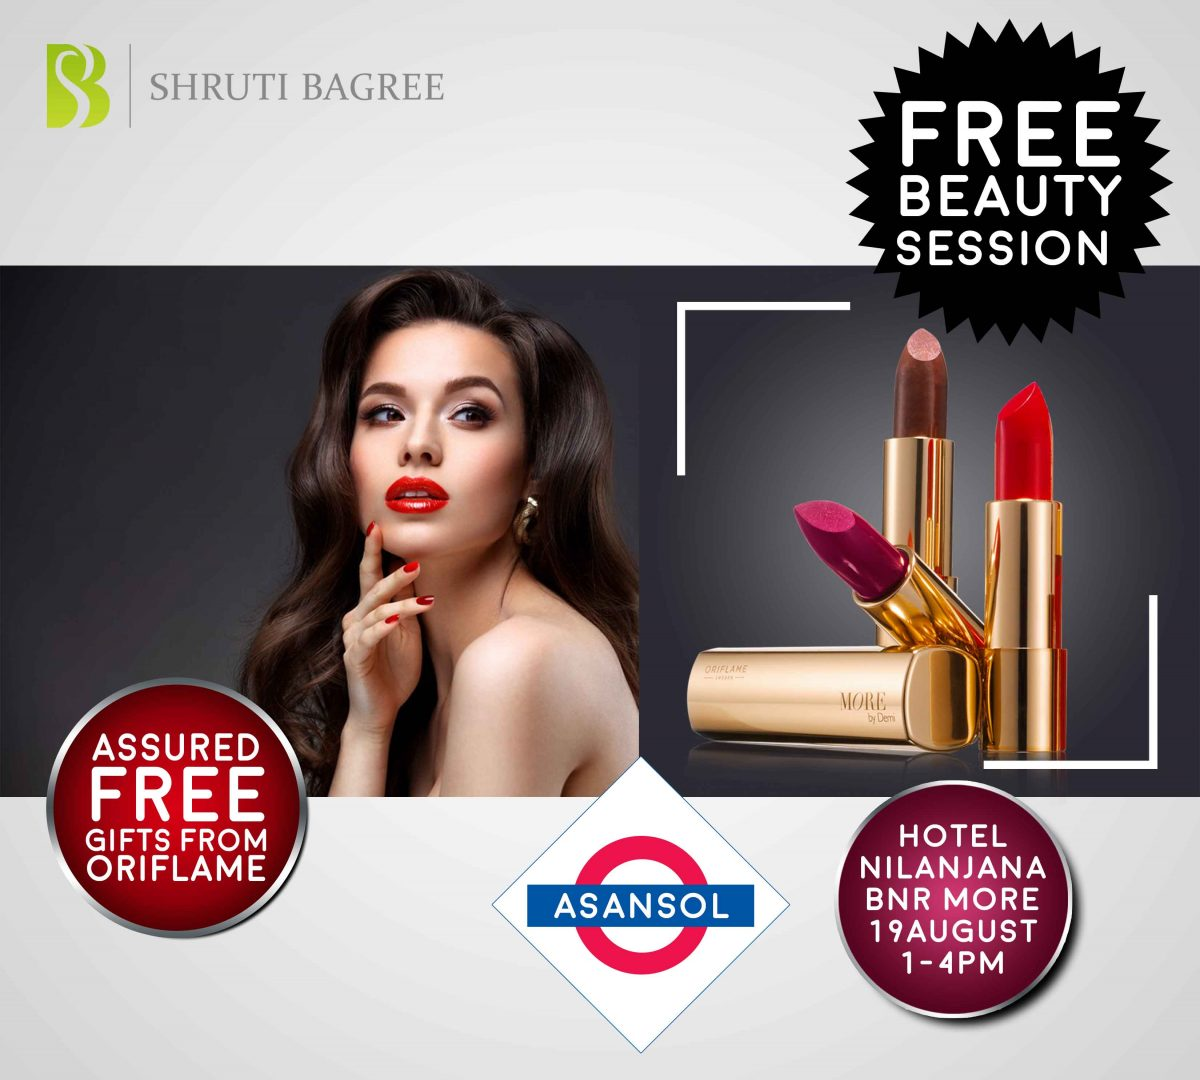 Free Beauty Event at Asansol